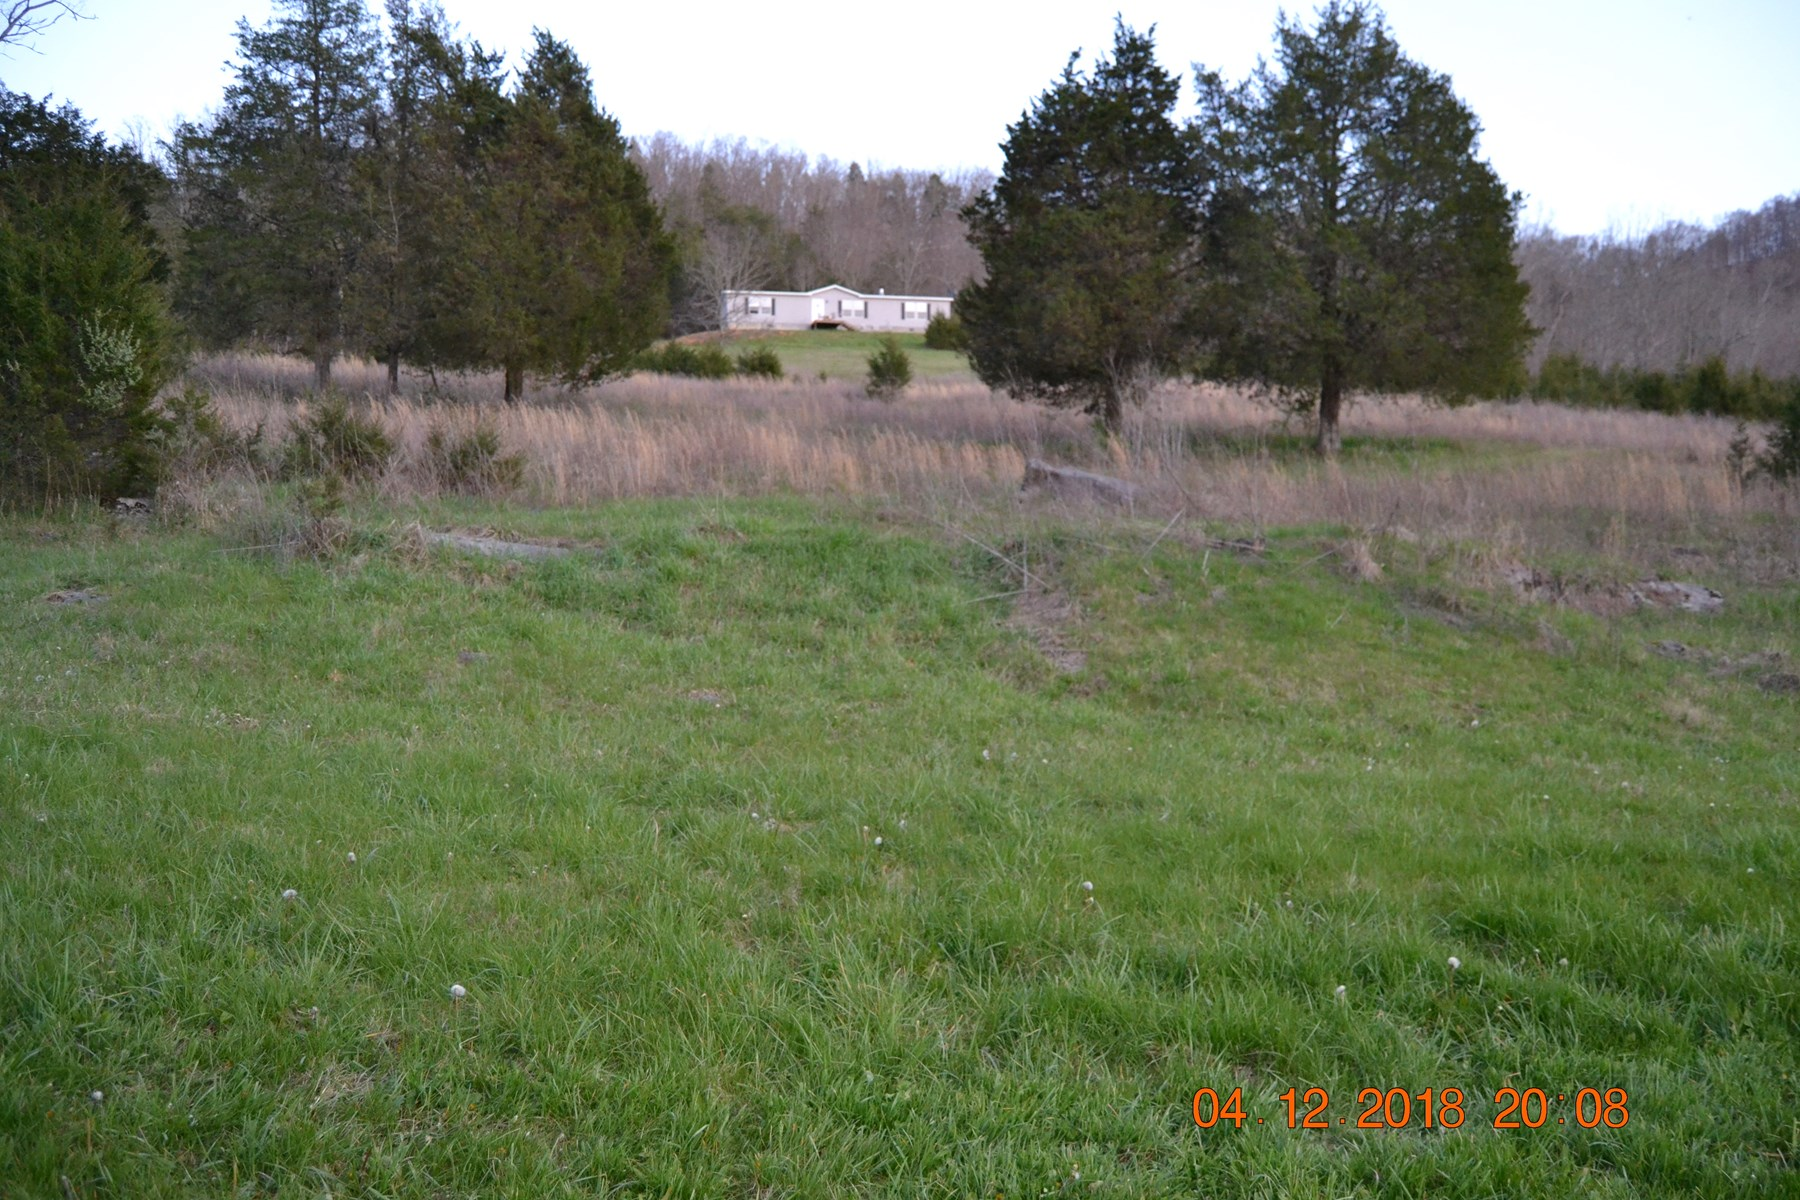 53 ACRE FARM AND HOME FOR SALE IN EAST TN